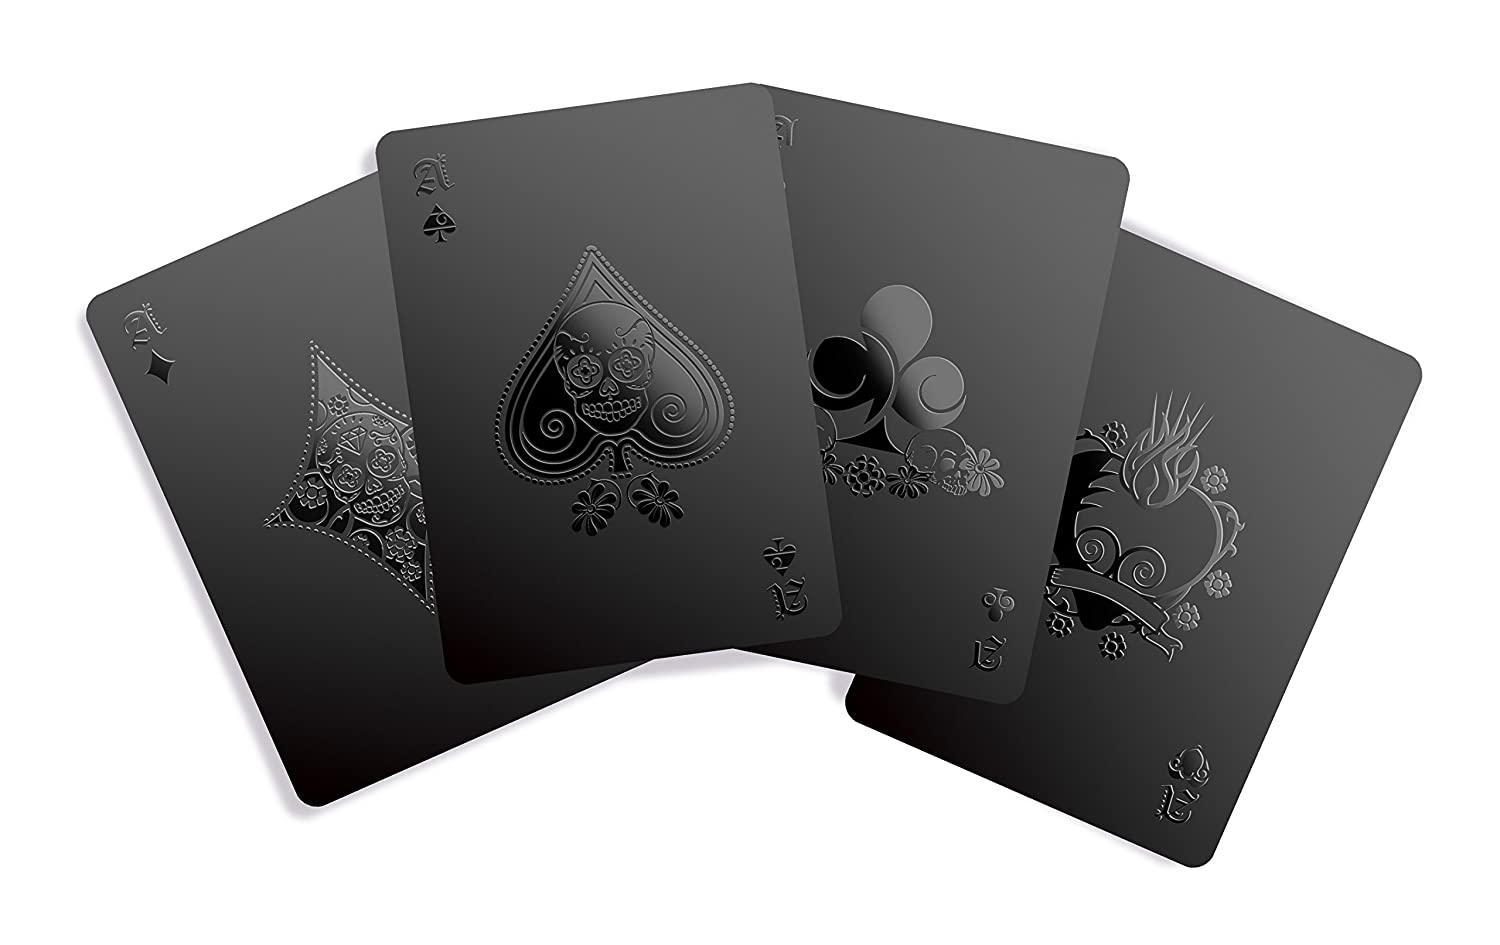 Gent Supply Black Waterproof Playing Cards - Day of The Dead Edition